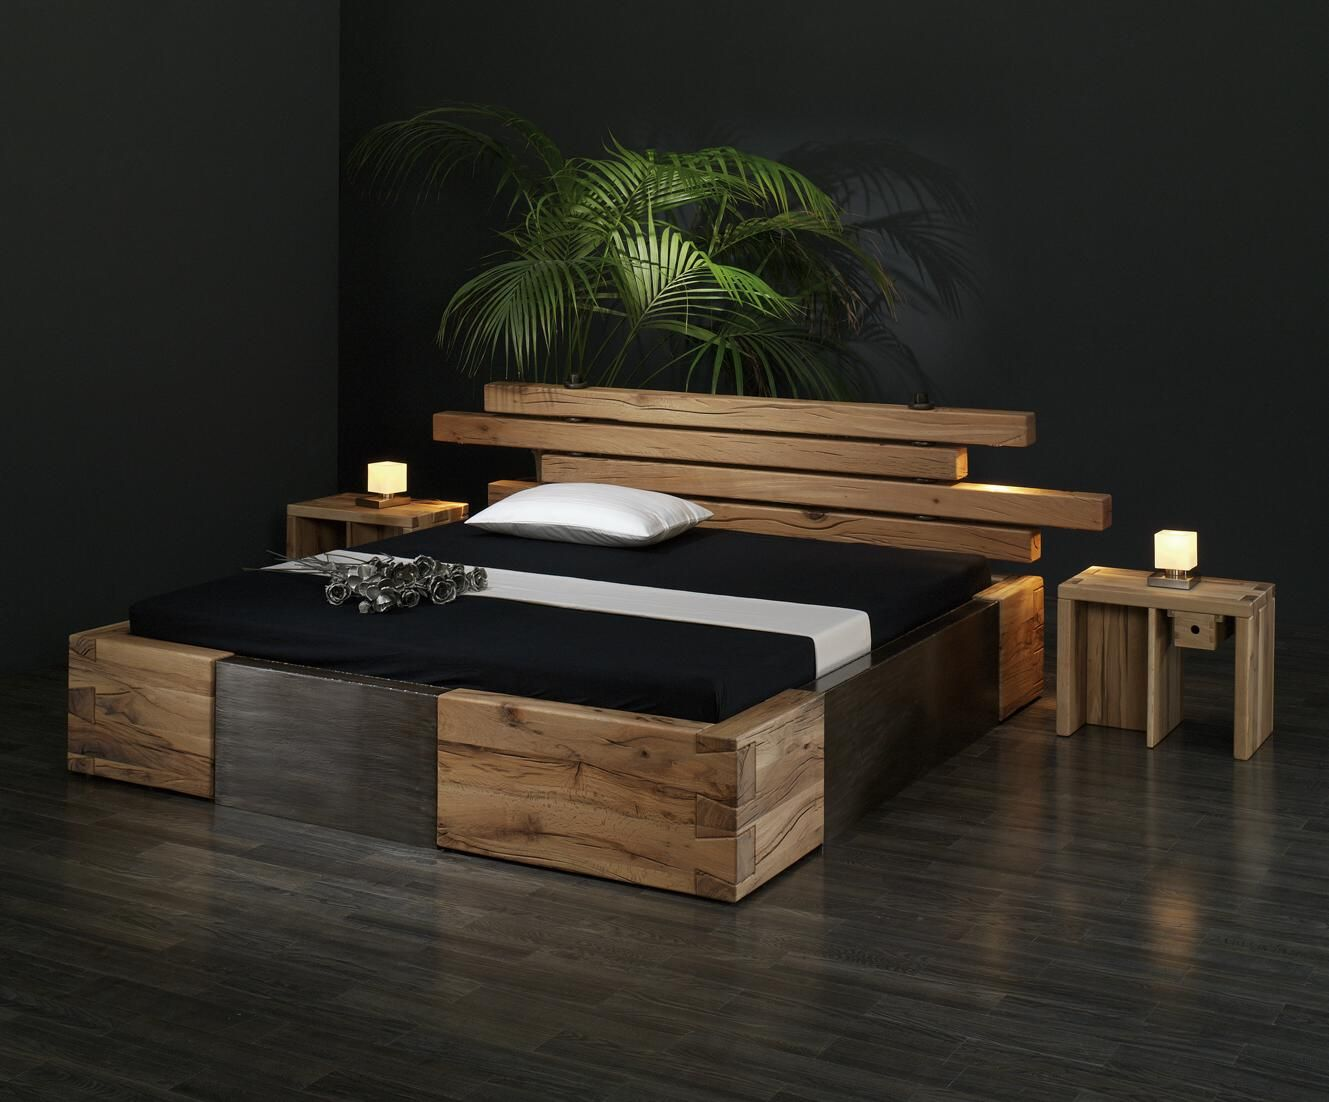 Vollholz Bett Holz Bett Design Google Search кровать Bett Schlafzimmer Und